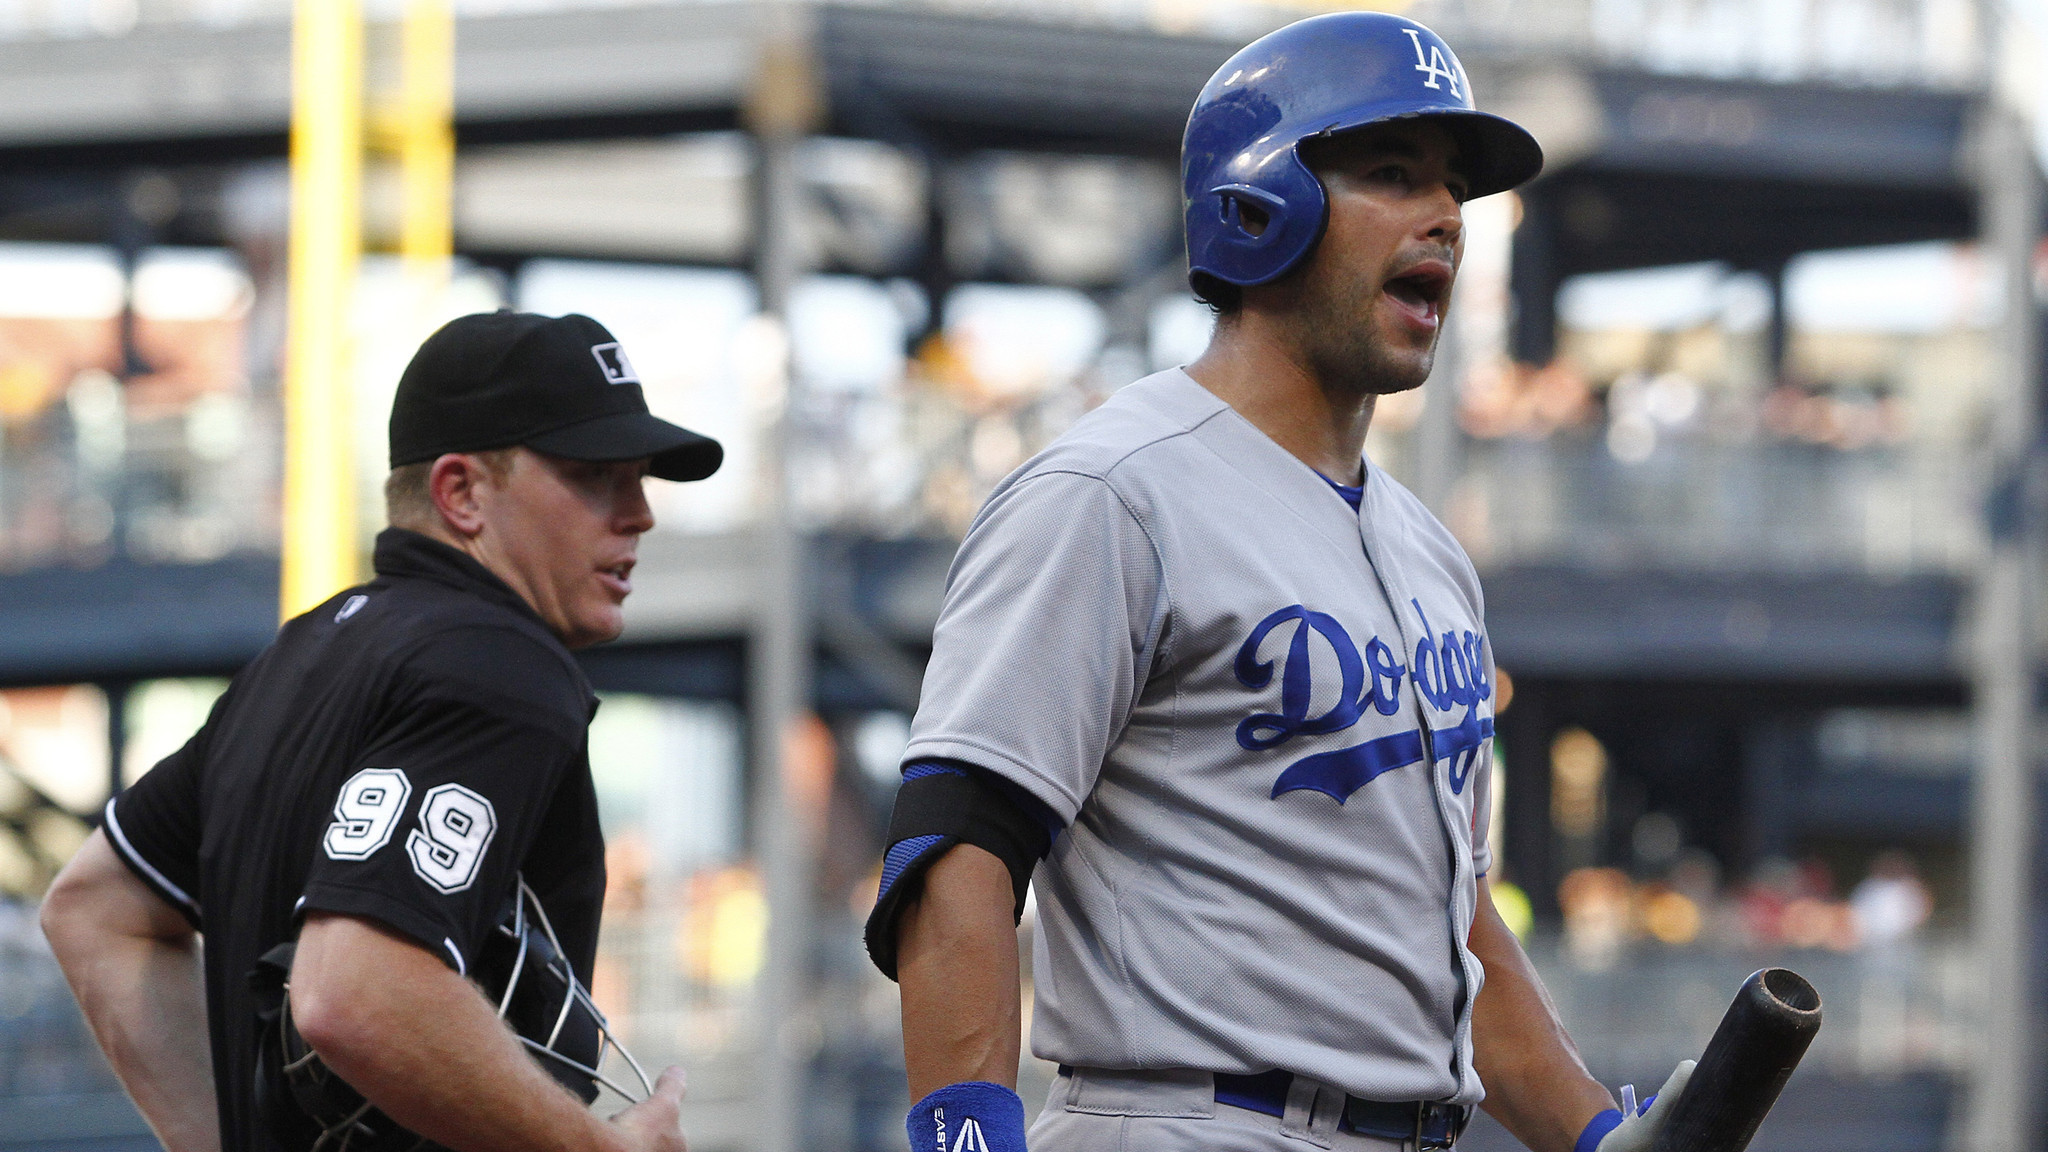 Dodgers can't keep up with Pirates in 12-7 loss